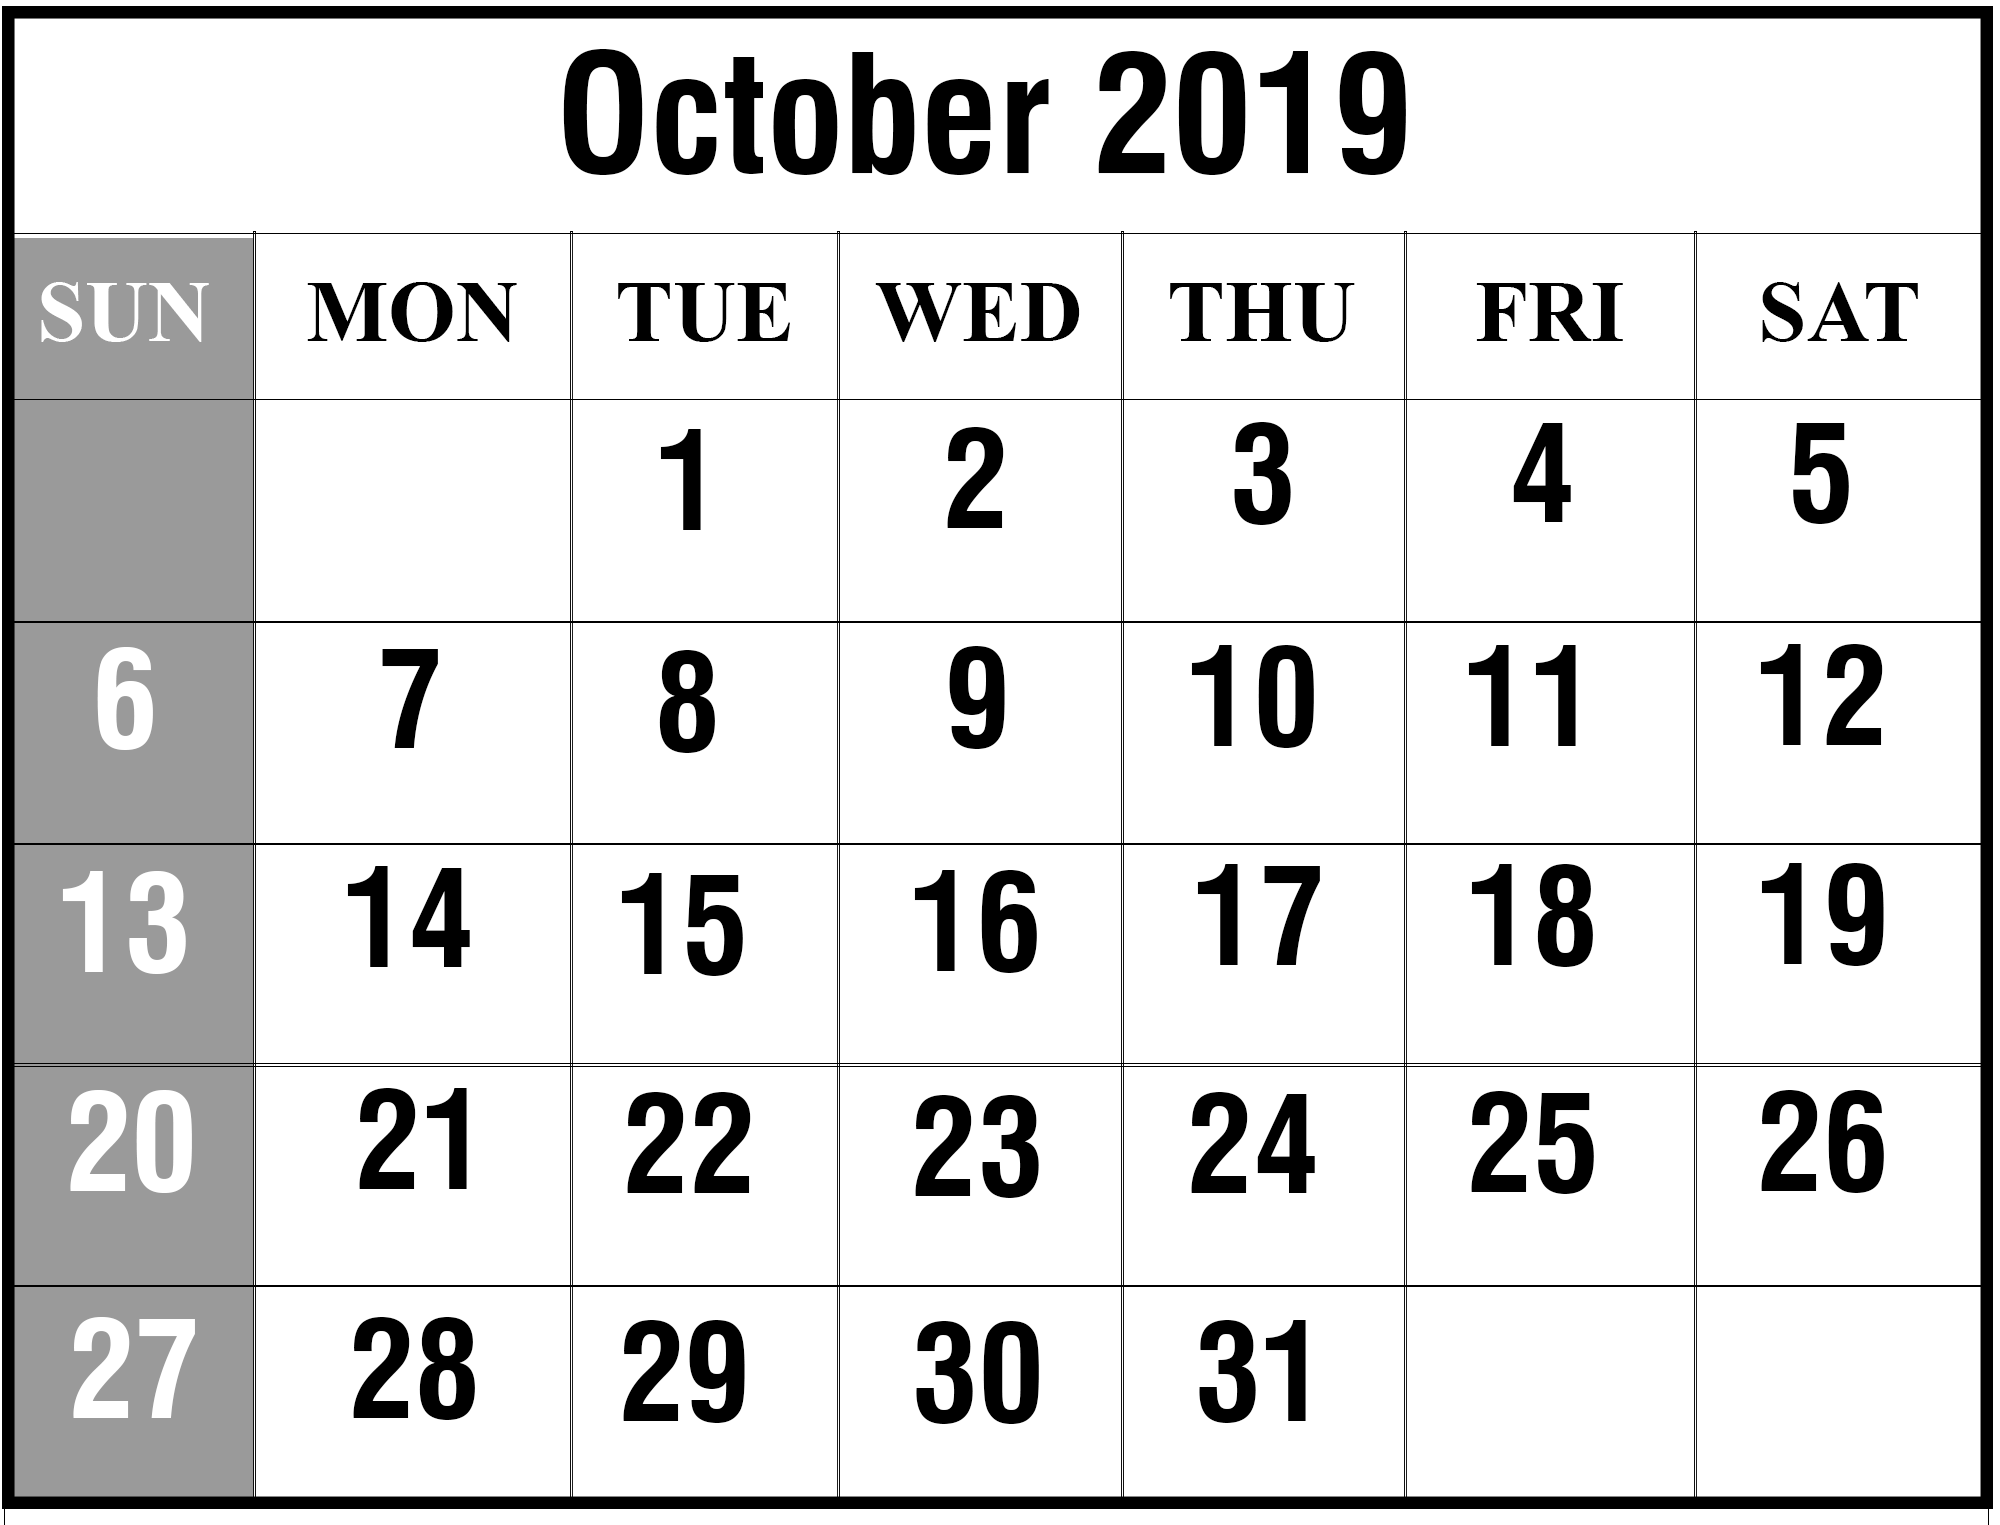 graphic relating to October Calendar Printable called Oct 2019 Calendar Printable Oct Blank Calendar